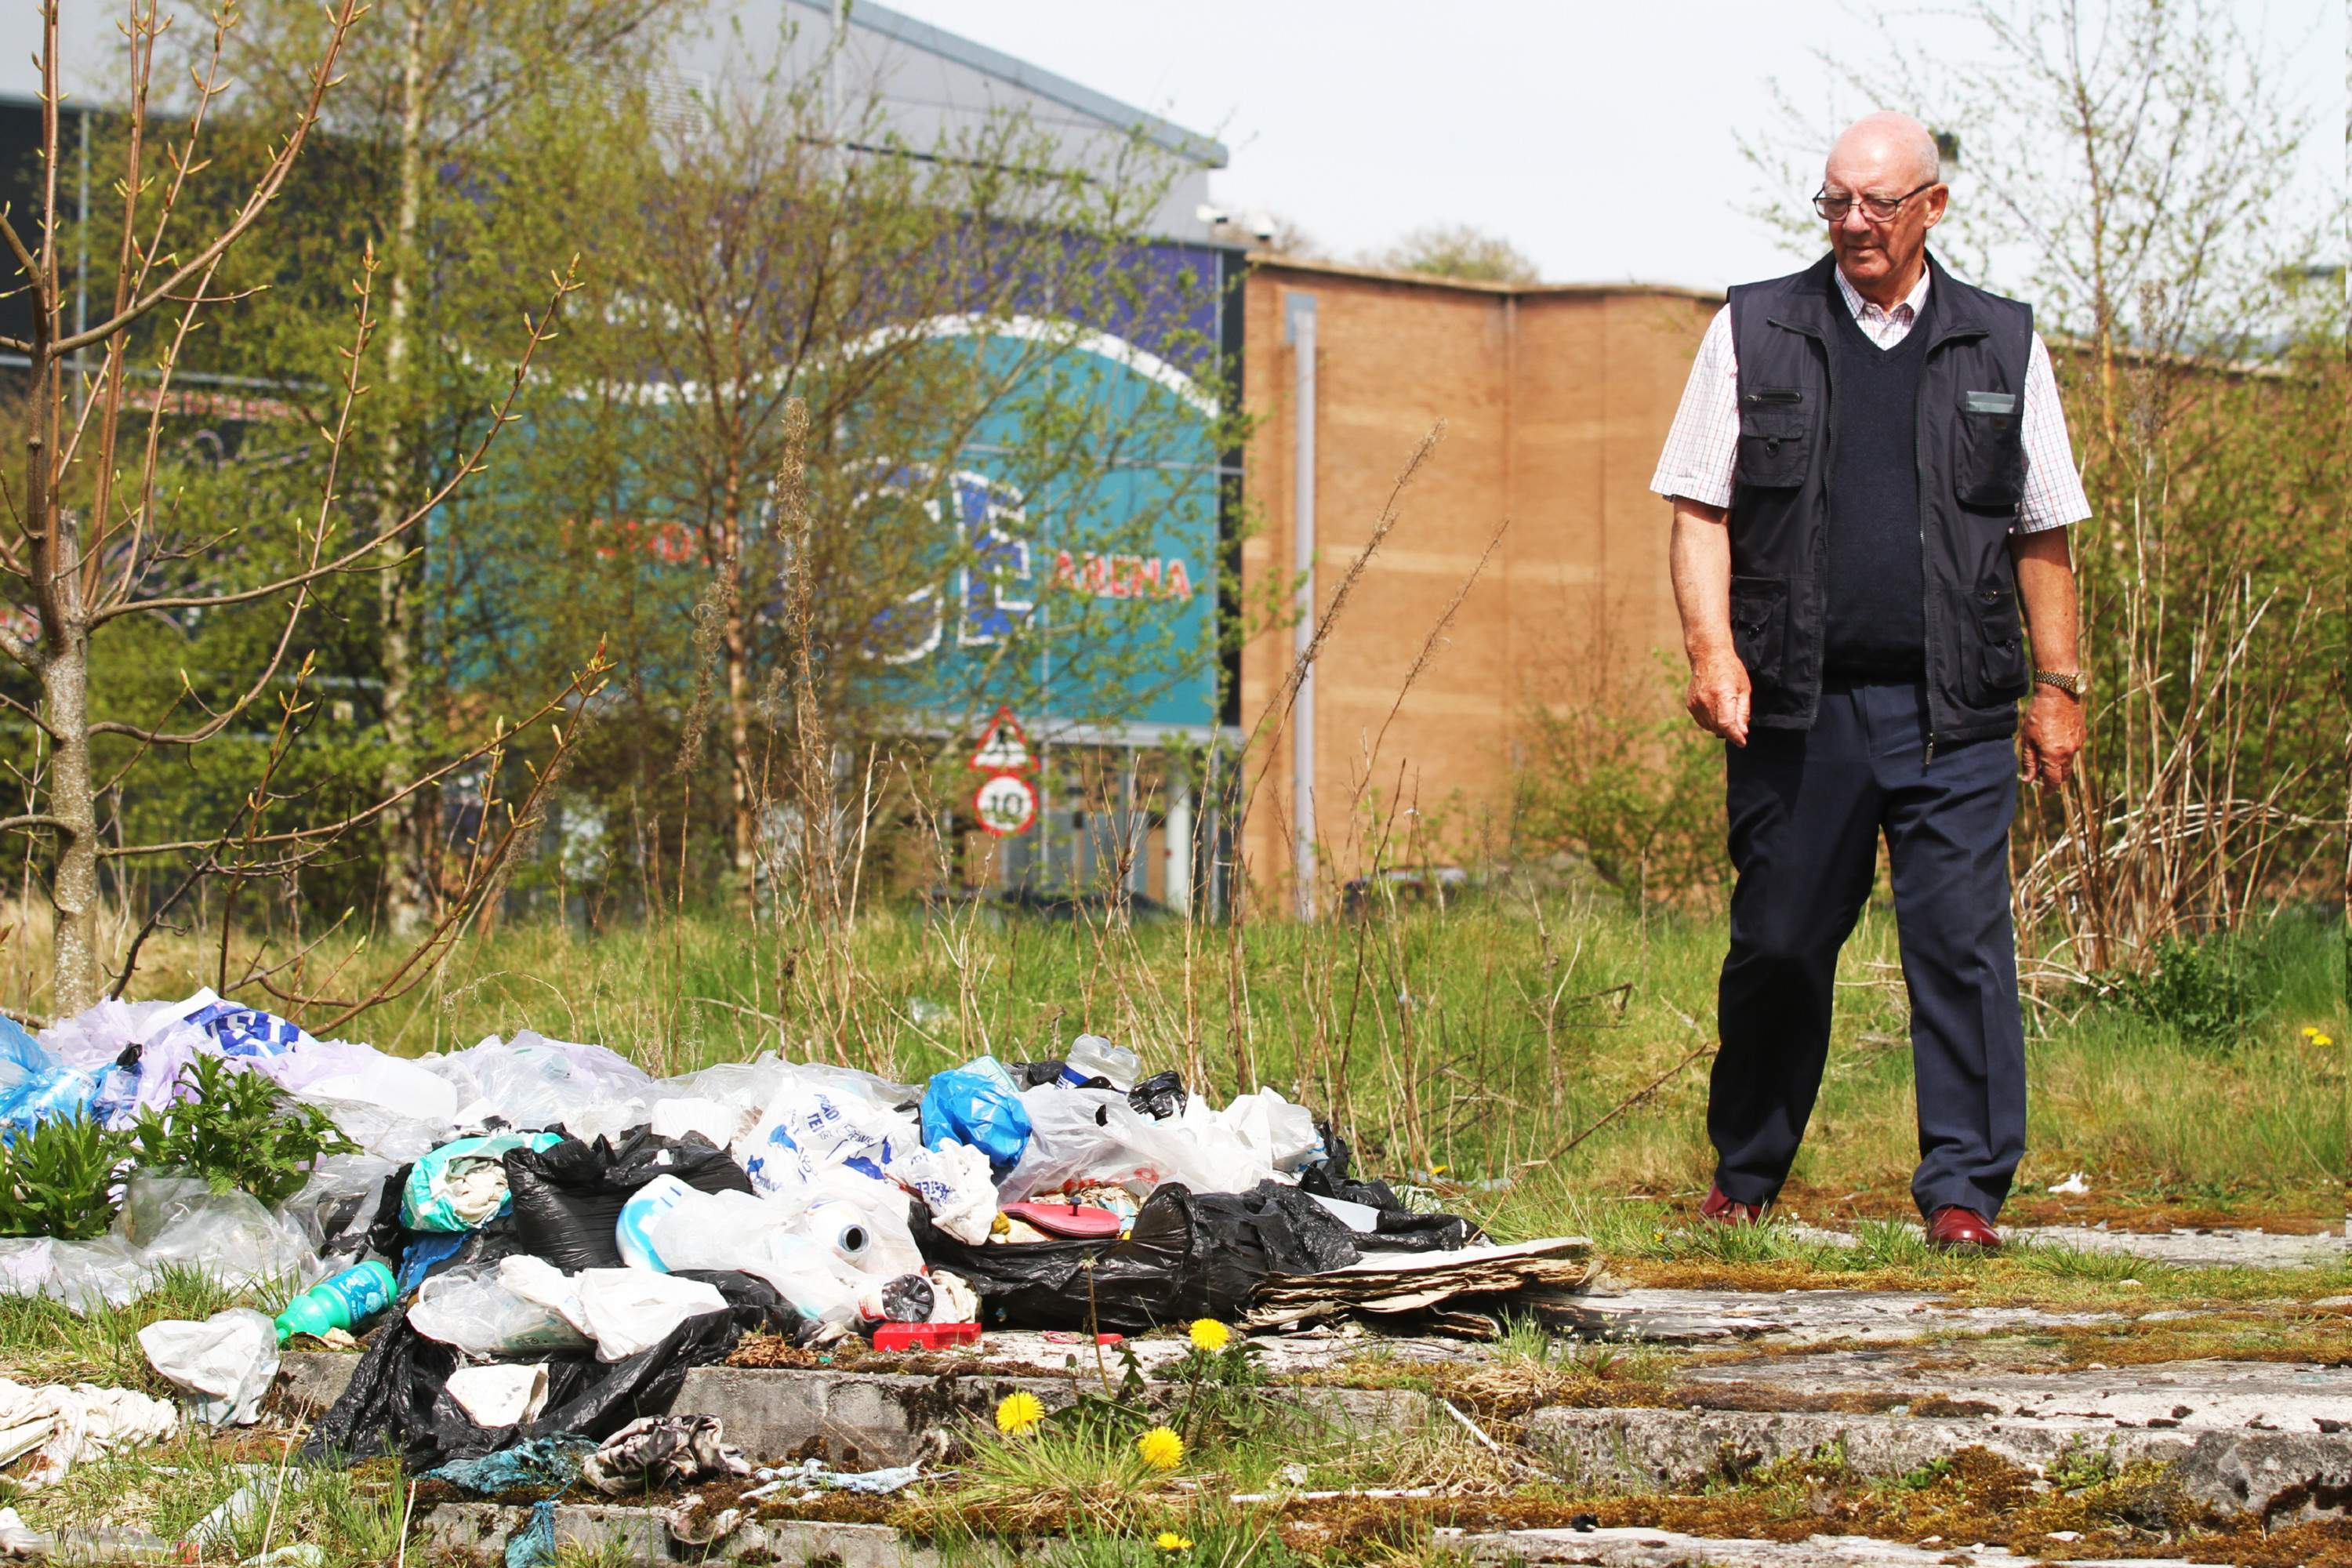 John McNaughton has criticised the fly-tipping which has been going on behind the ice arena, which will host an international tournament next month.